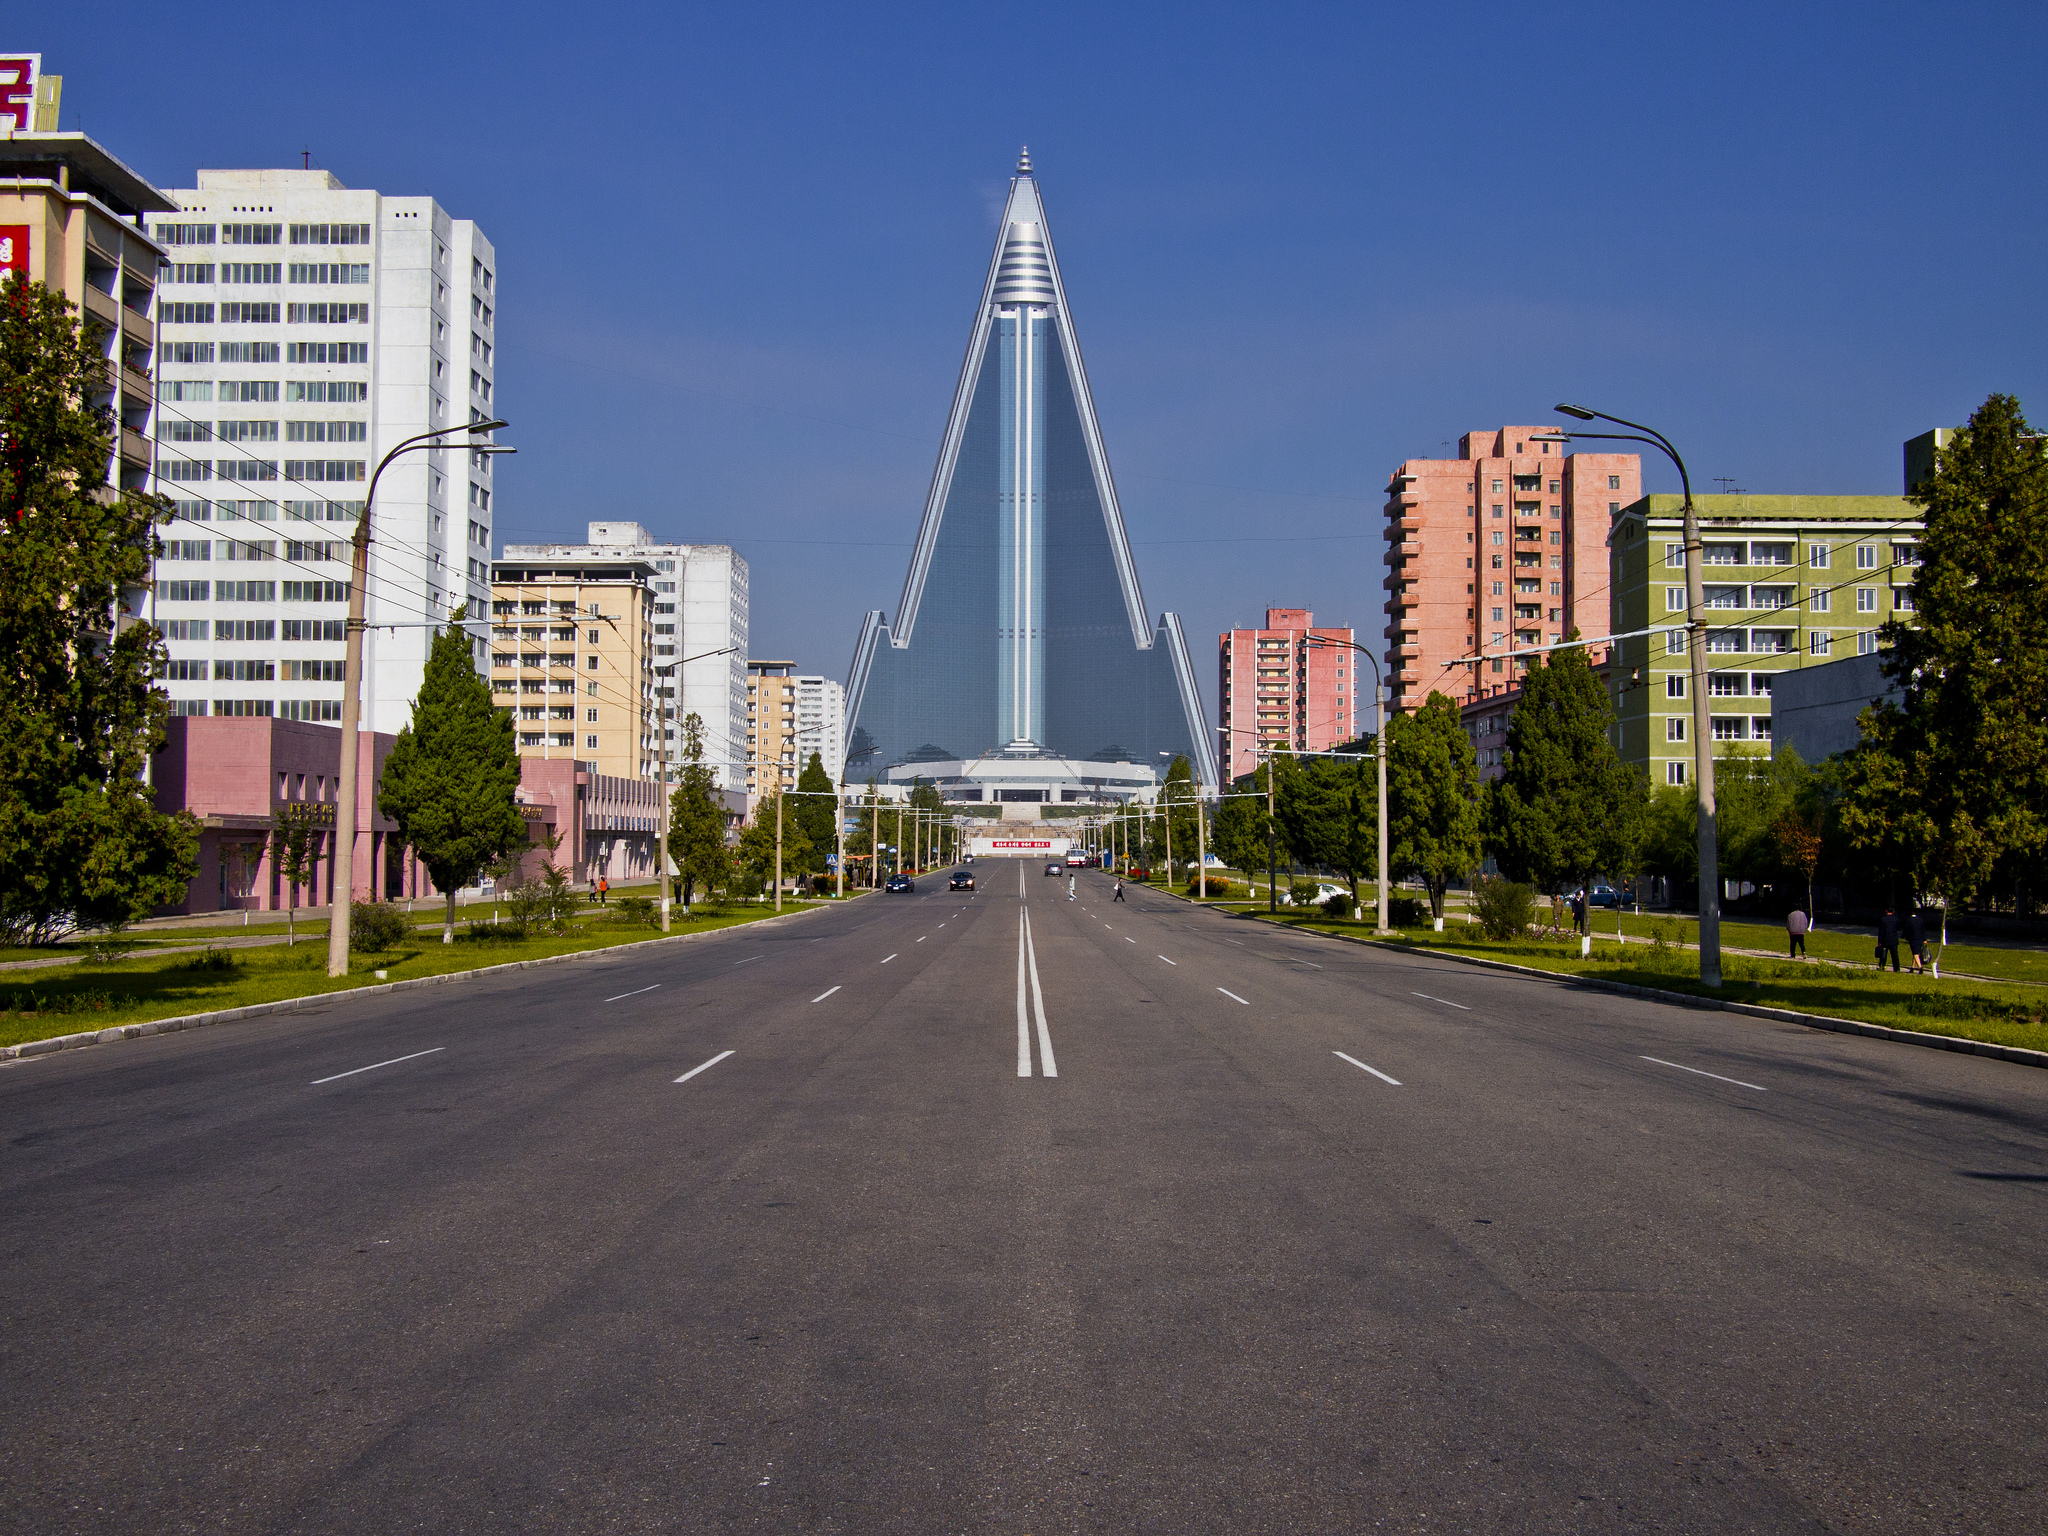 Pyongyang - City in North Korea - Thousand Wonders